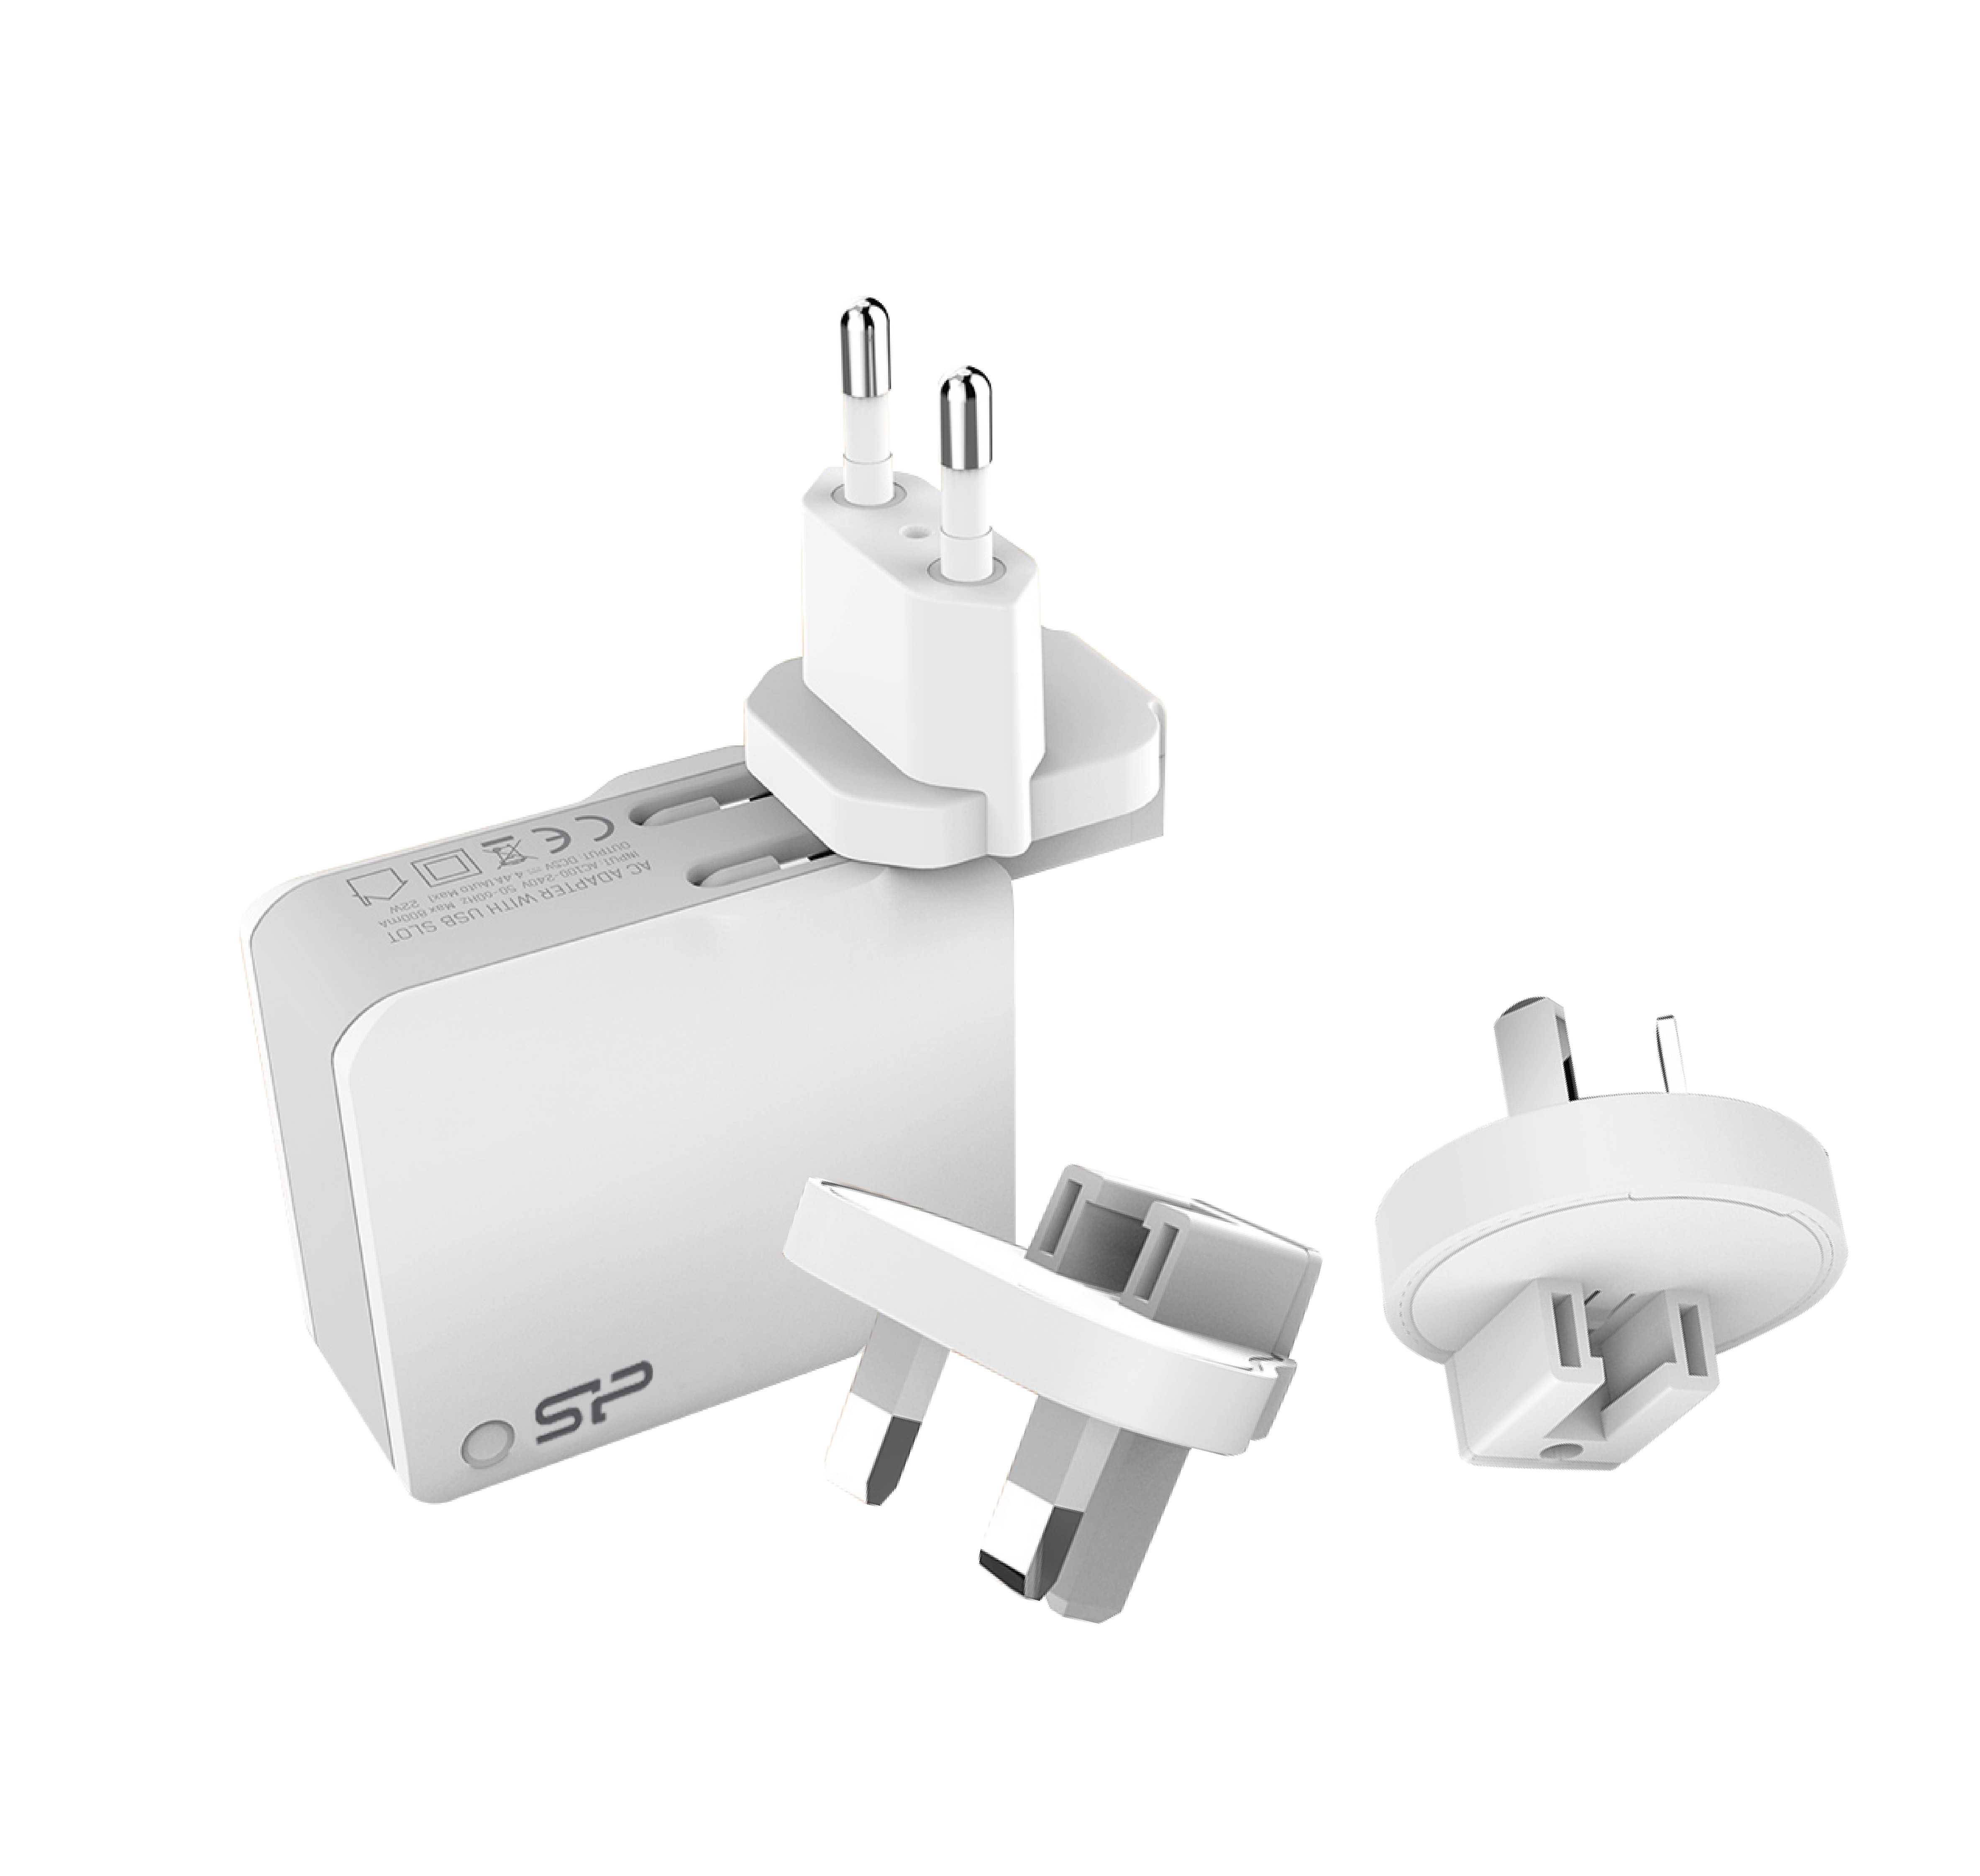 Accessories Boost Charger WC102P (Global)